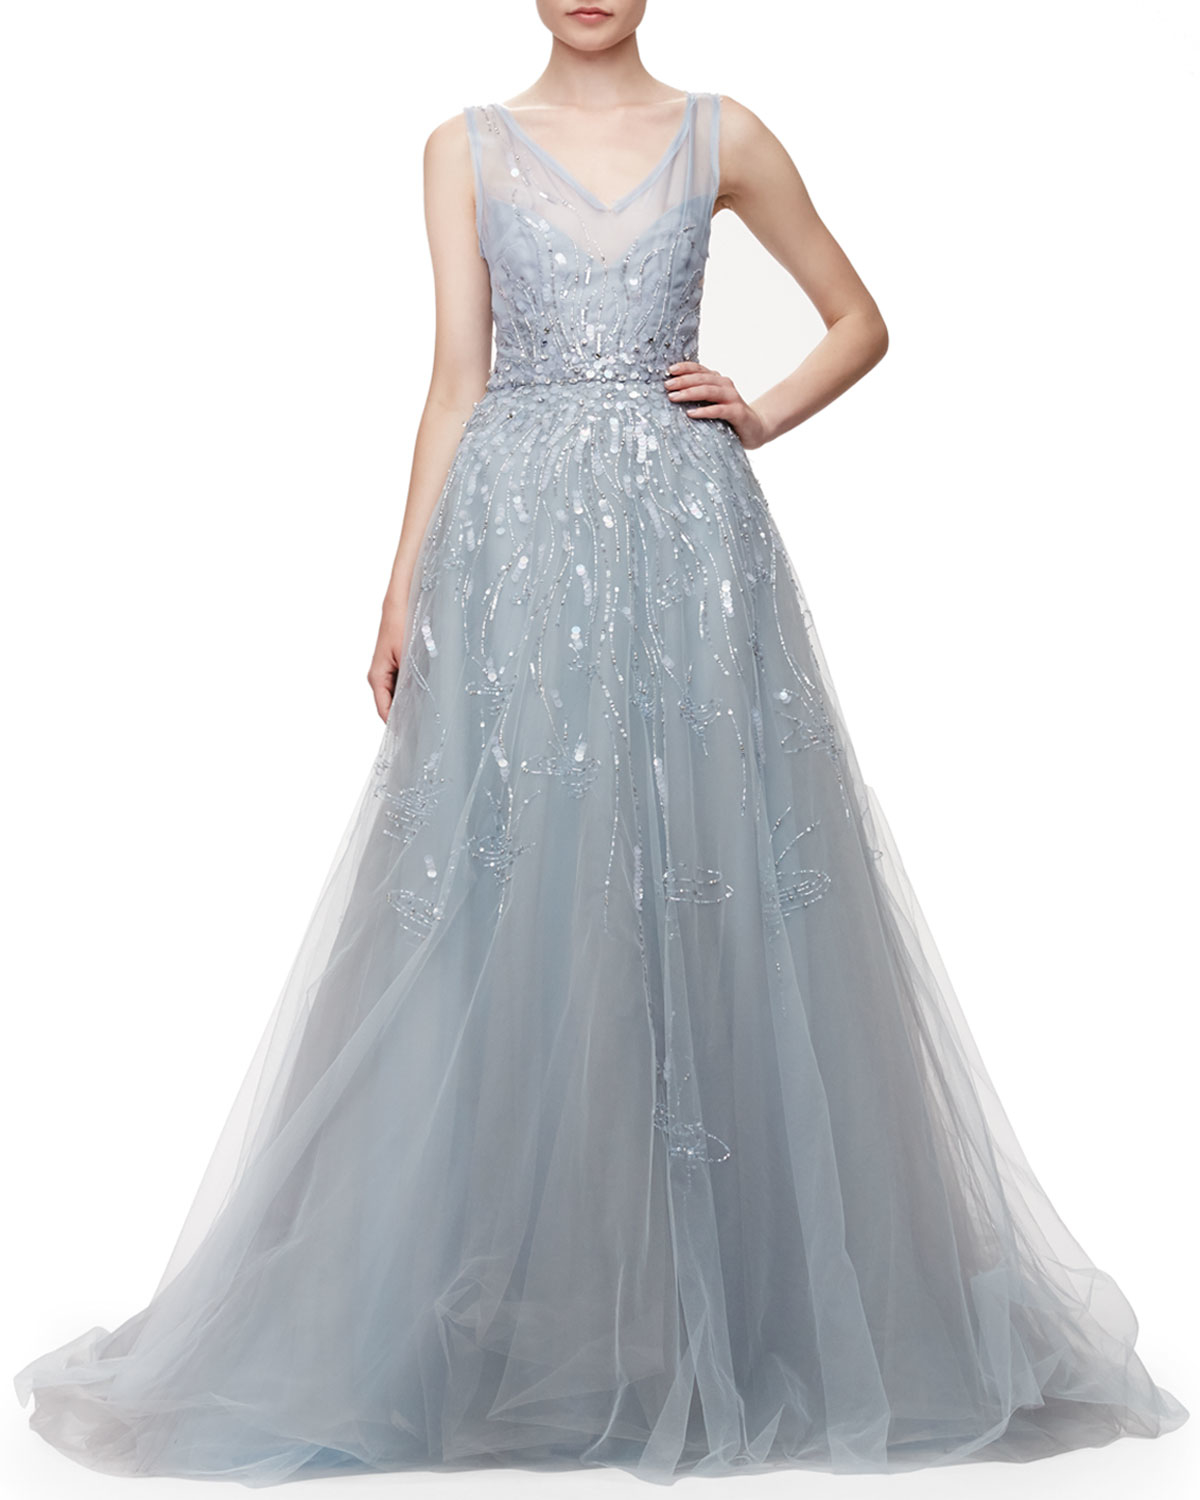 Lyst - Carolina Herrera Embroidered Tulle Gown in Blue